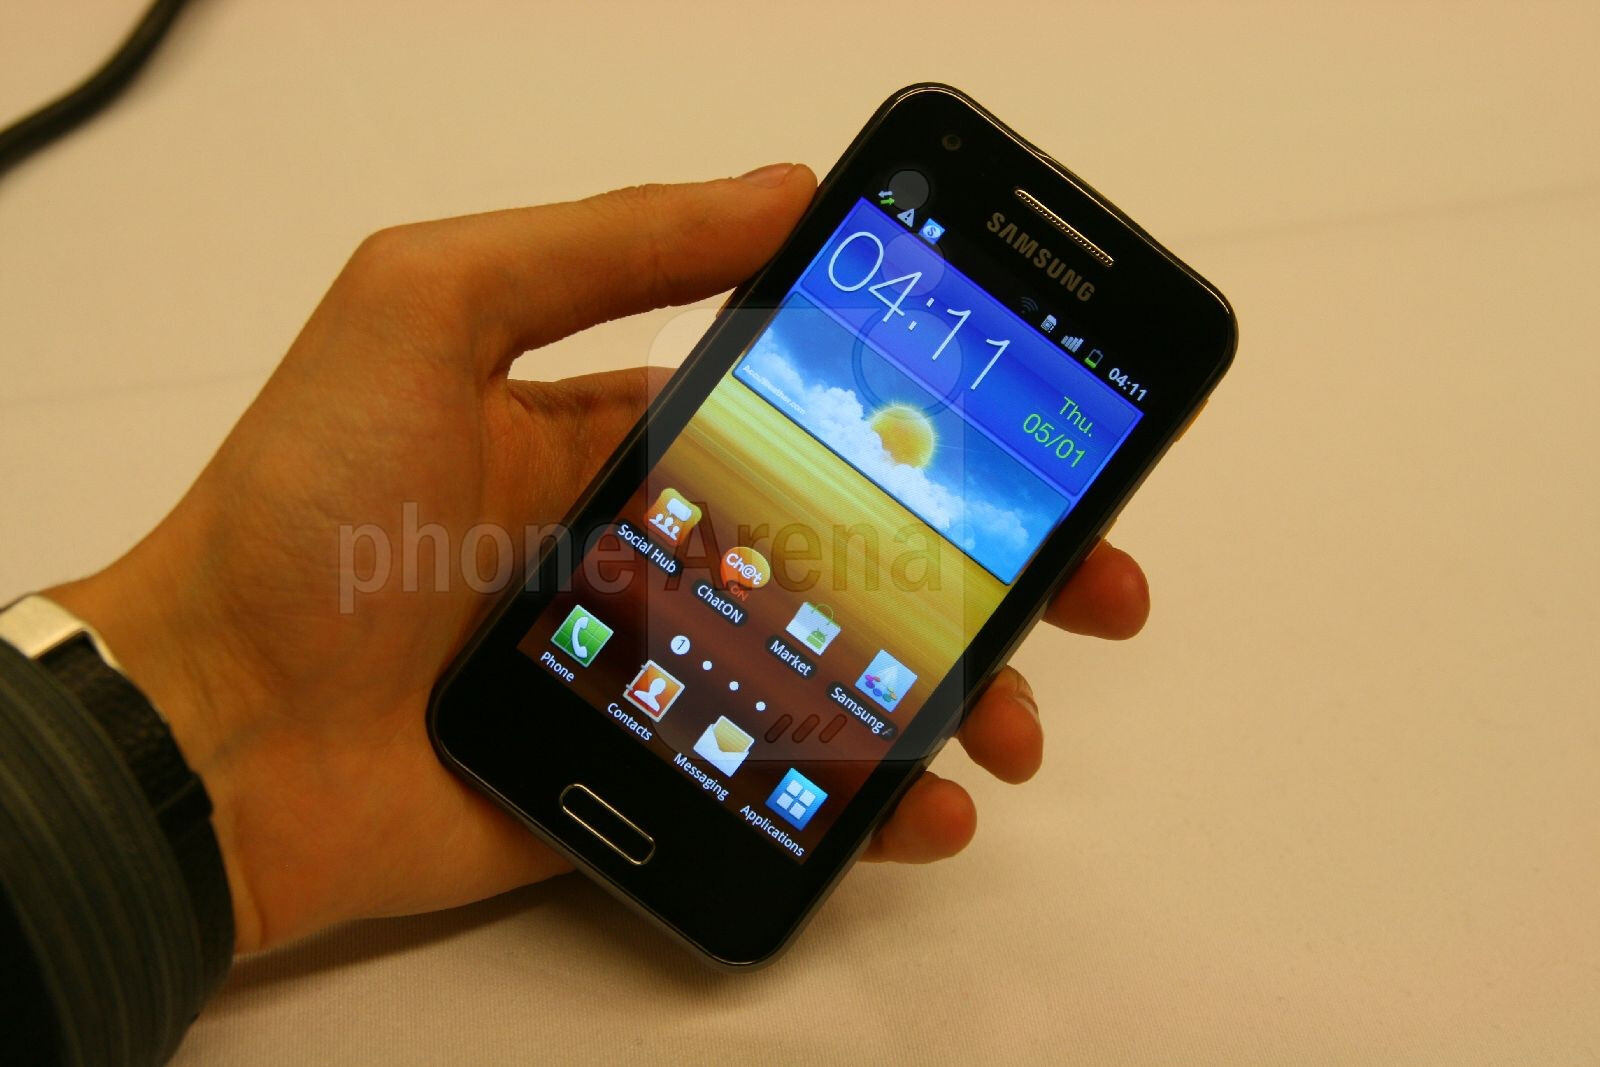 Samsung Galaxy Beam Hands On Review Phonearena Reviews